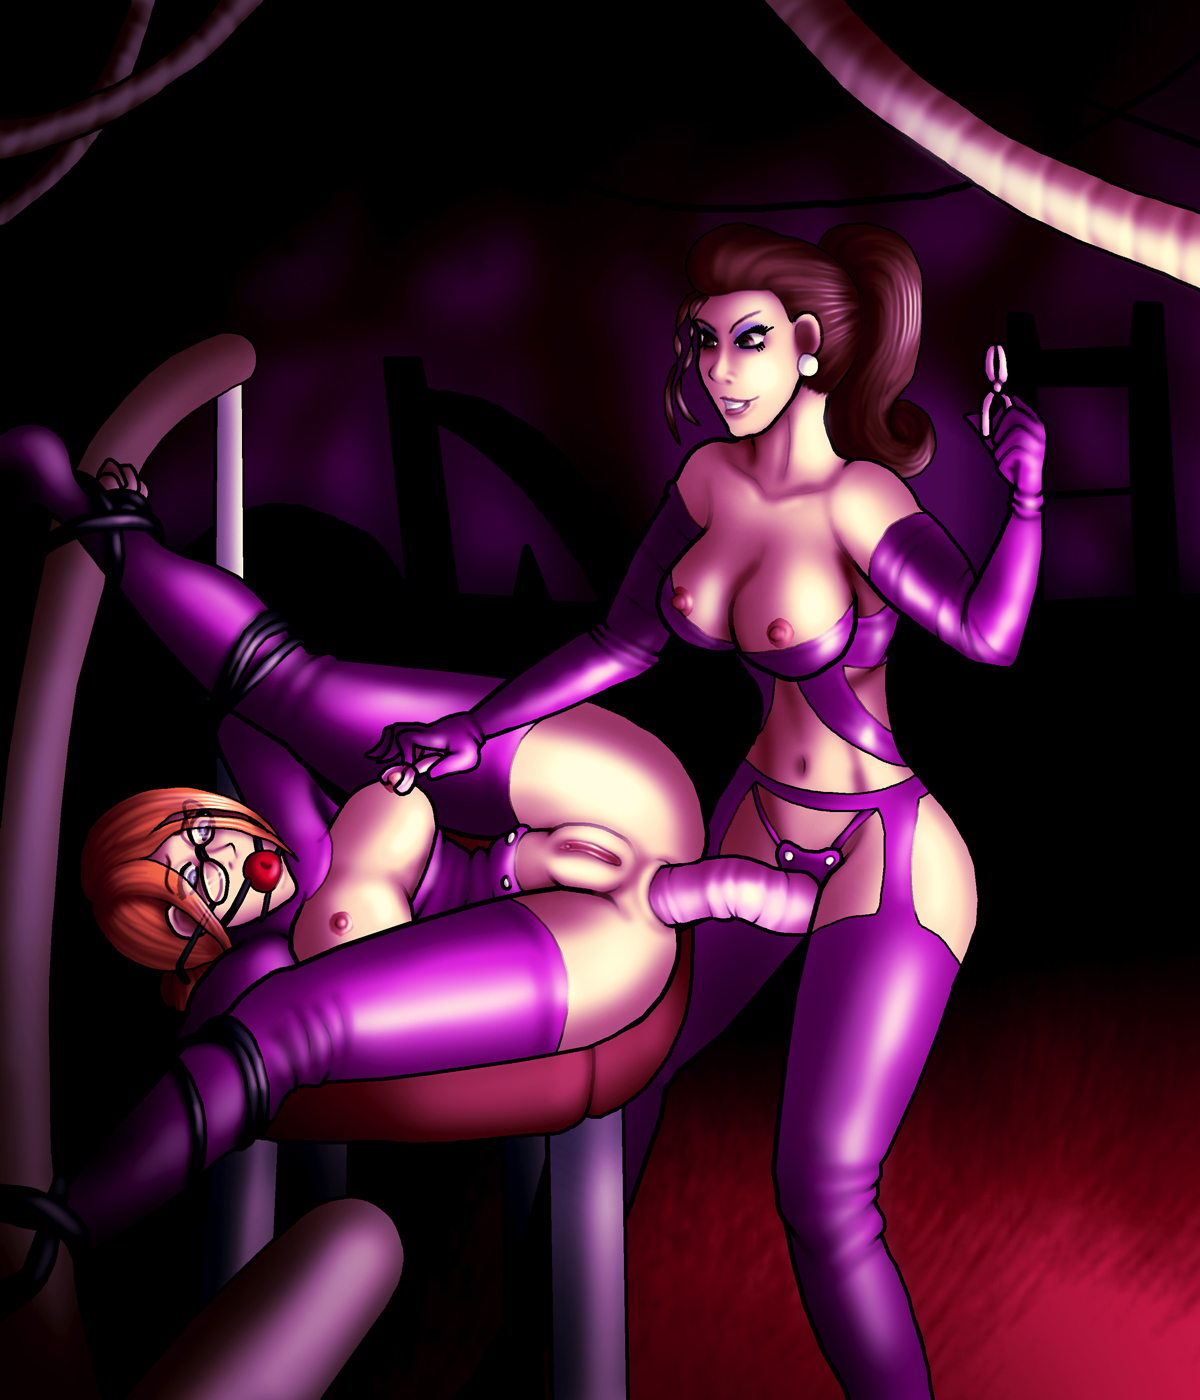 Saint row footjob cartoon pictures